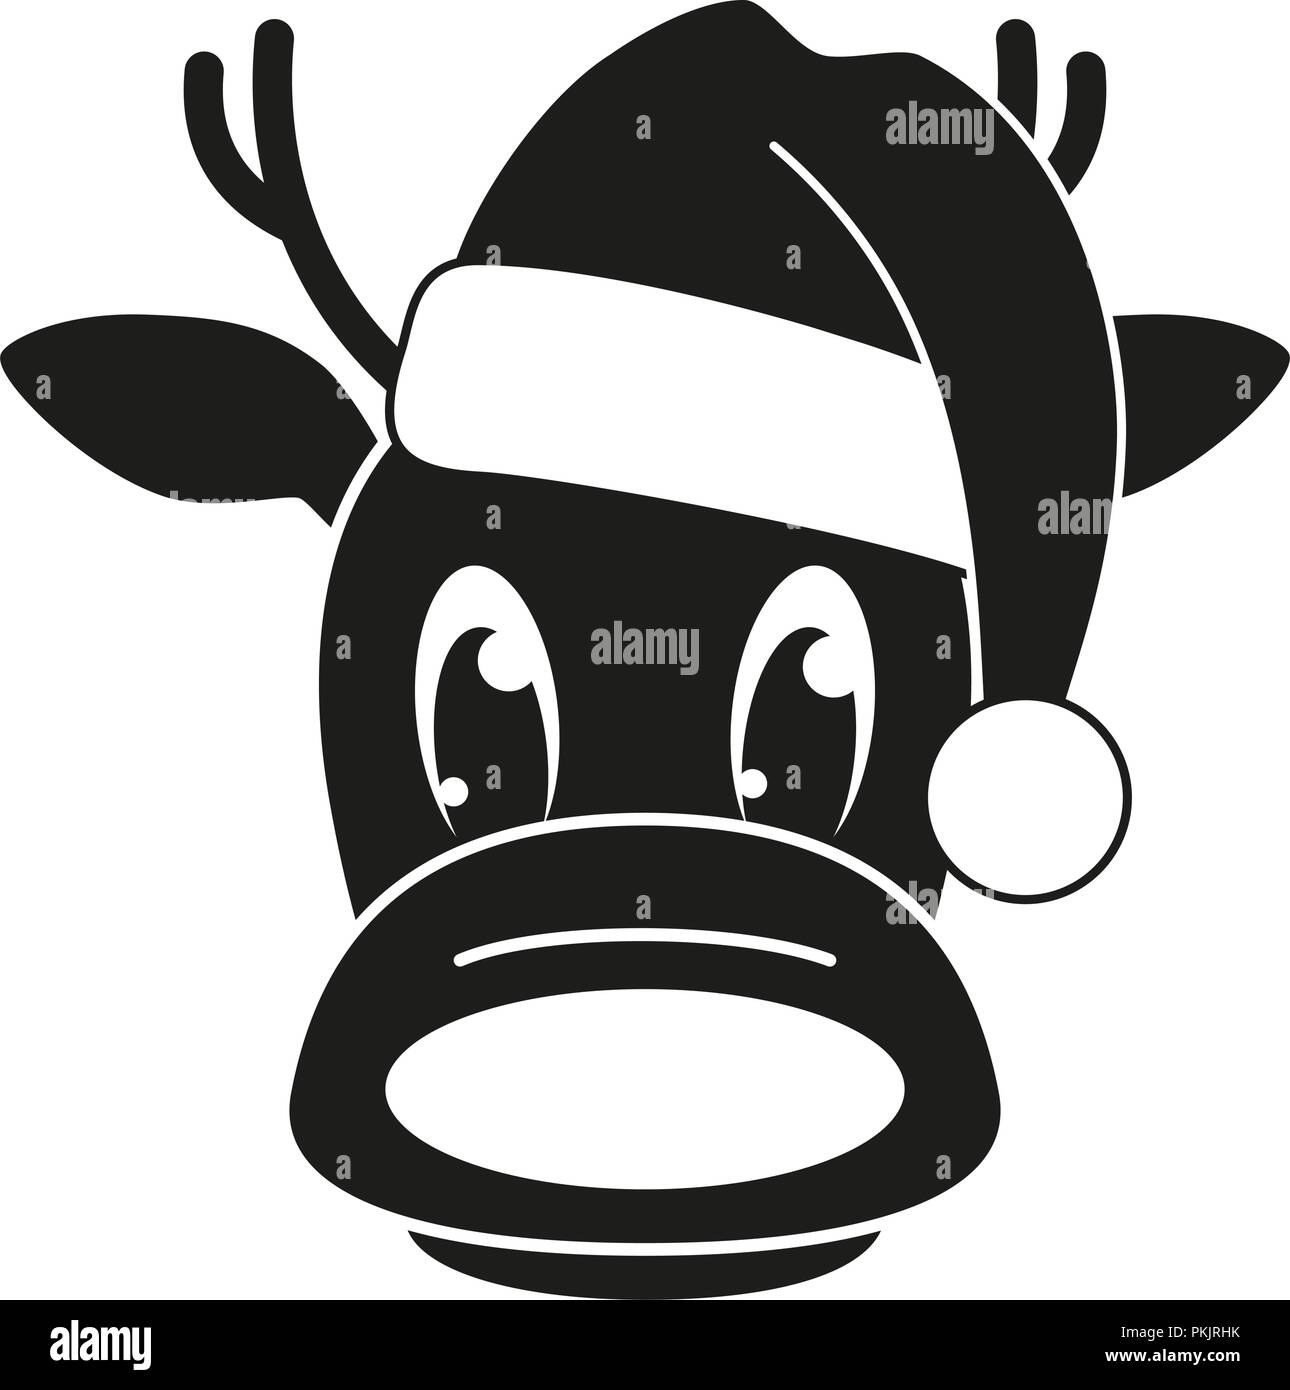 23de4d8a87403 Black and white reindeer head in hat silhouette. Funny mascot holiday  character. Christmas themed vector illustration for icon